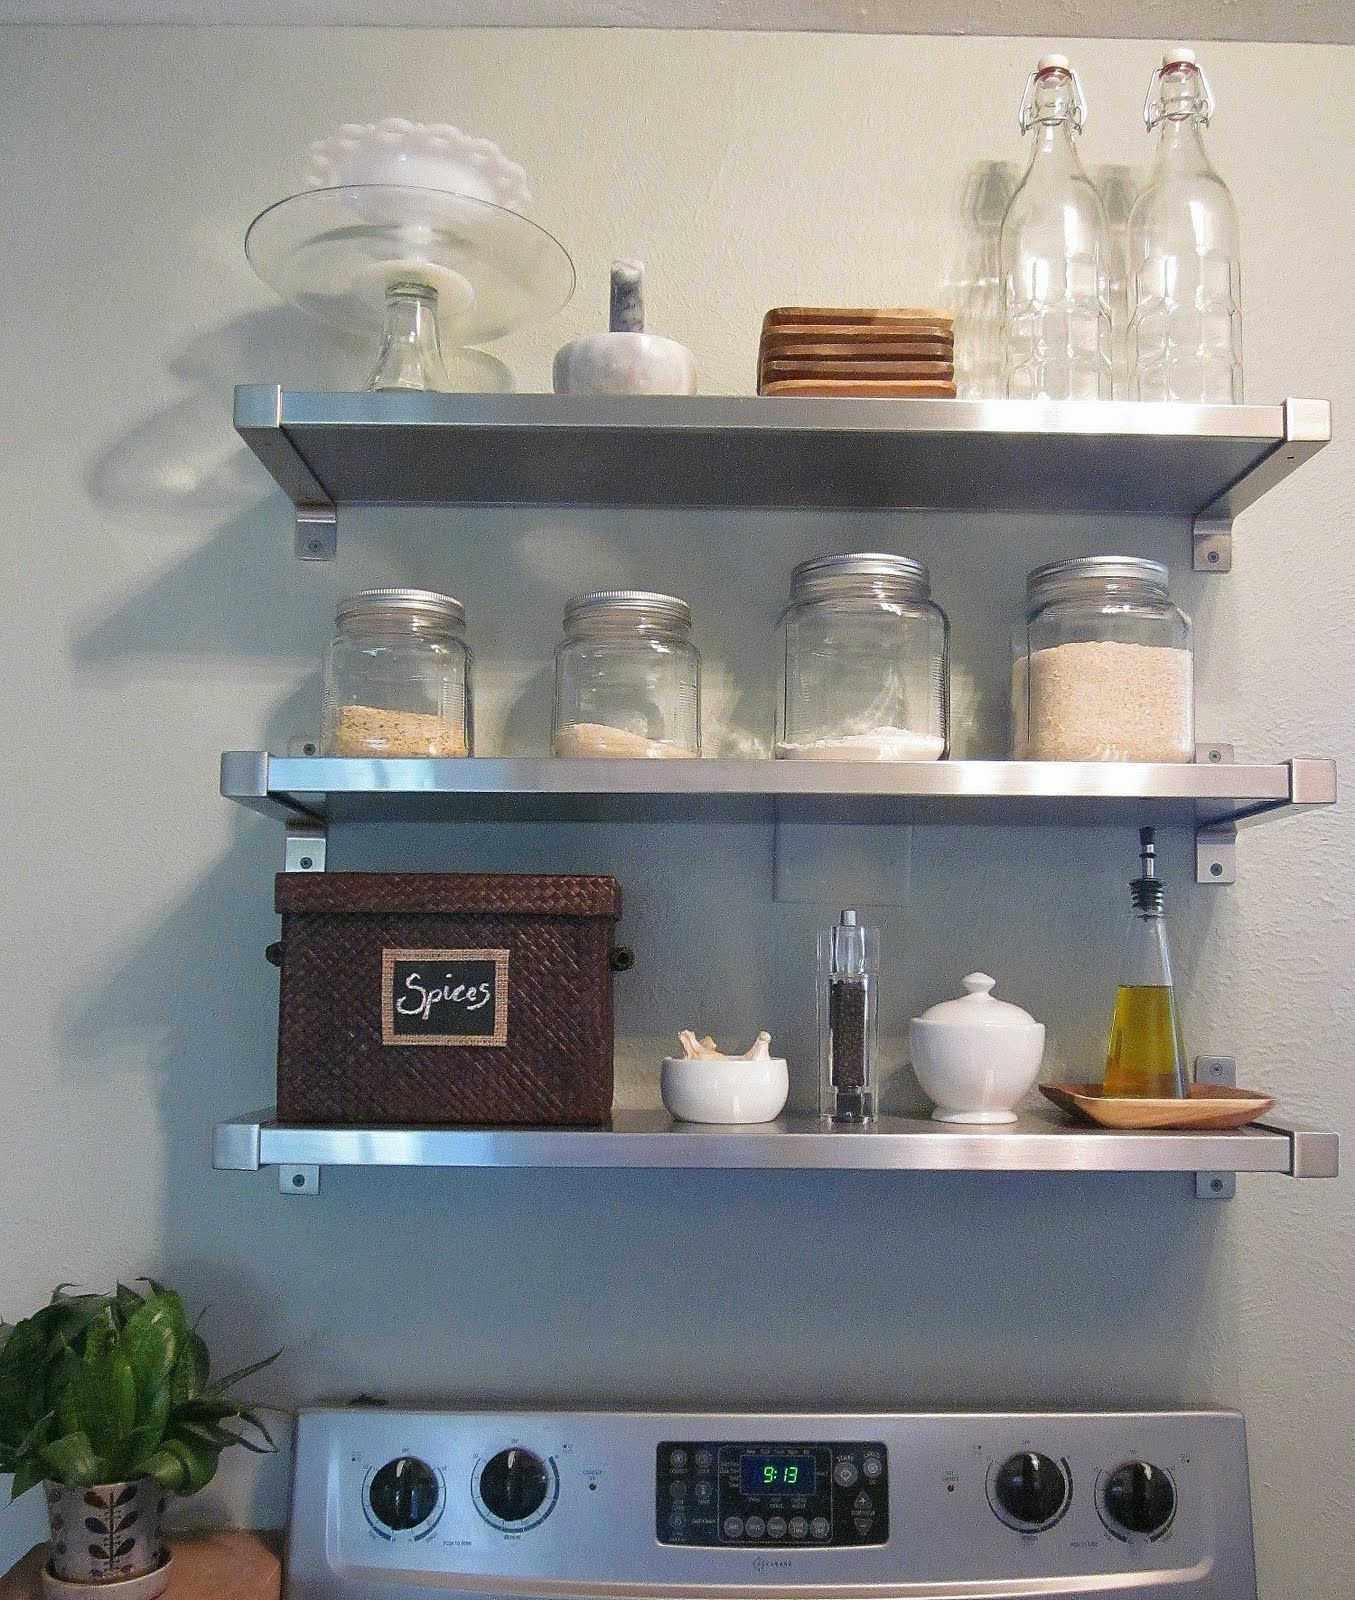 Pin By Jeanne On Kitchen S Shelves Ikea